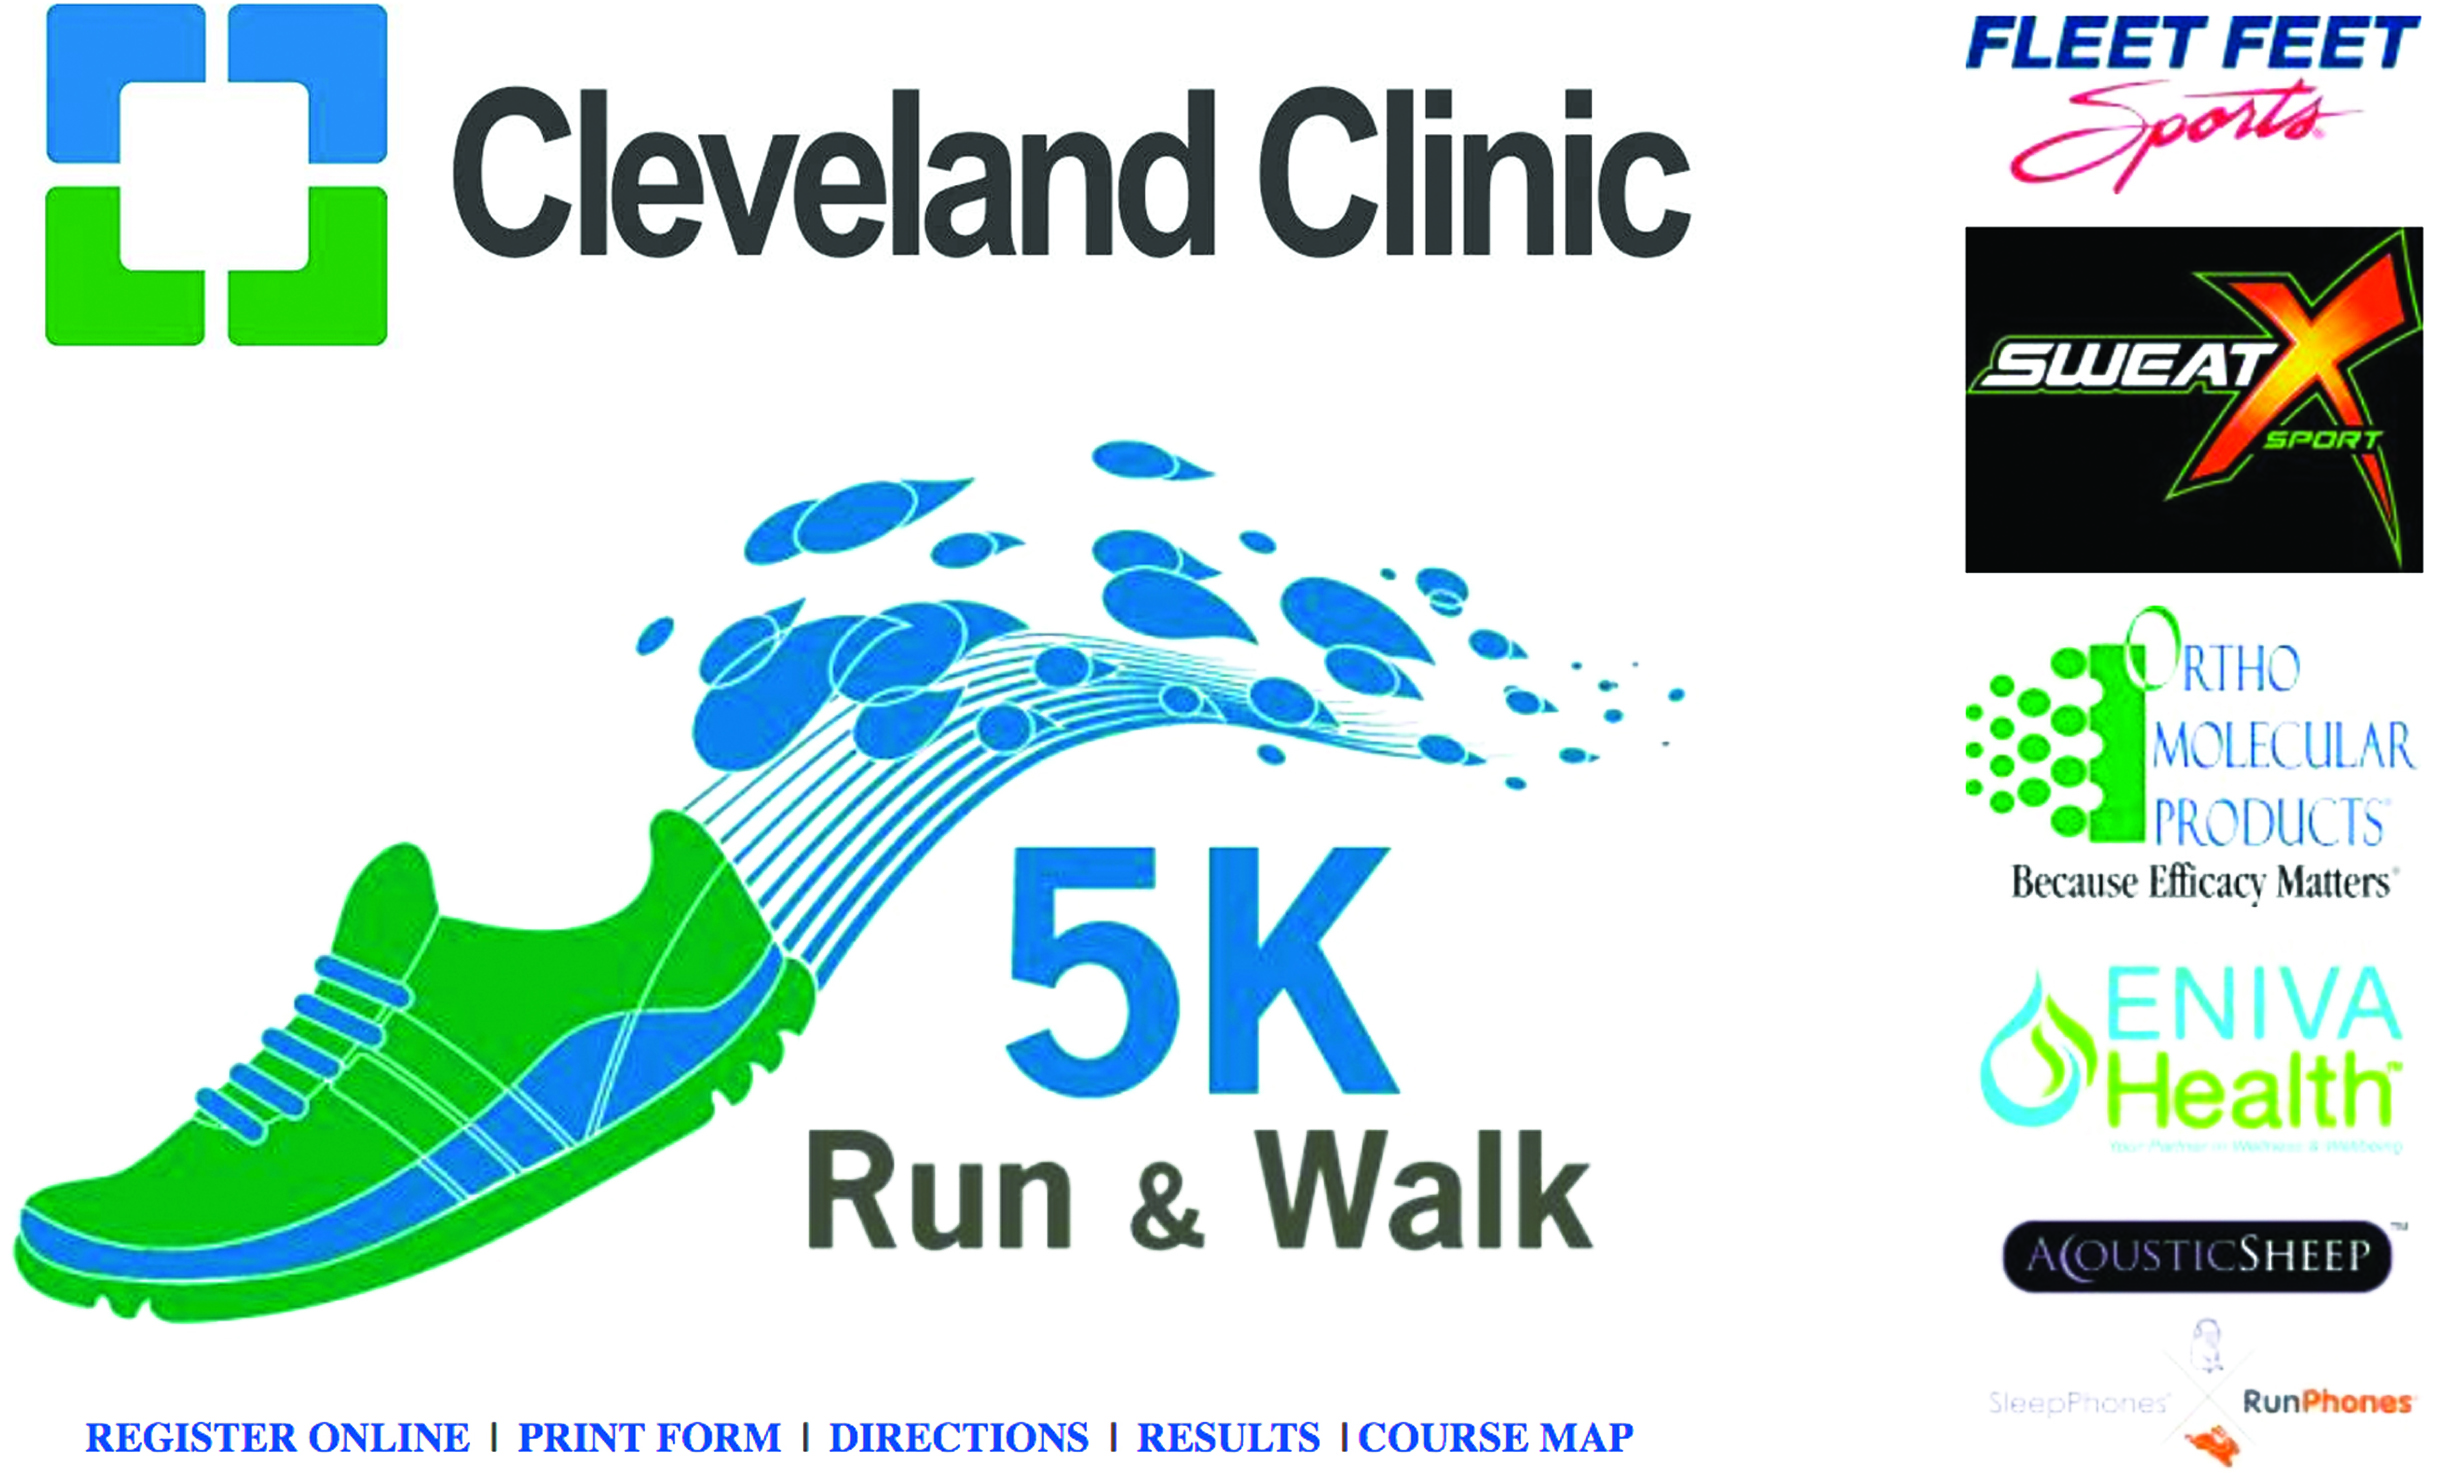 clevelabnd-clinic-ad.jpg